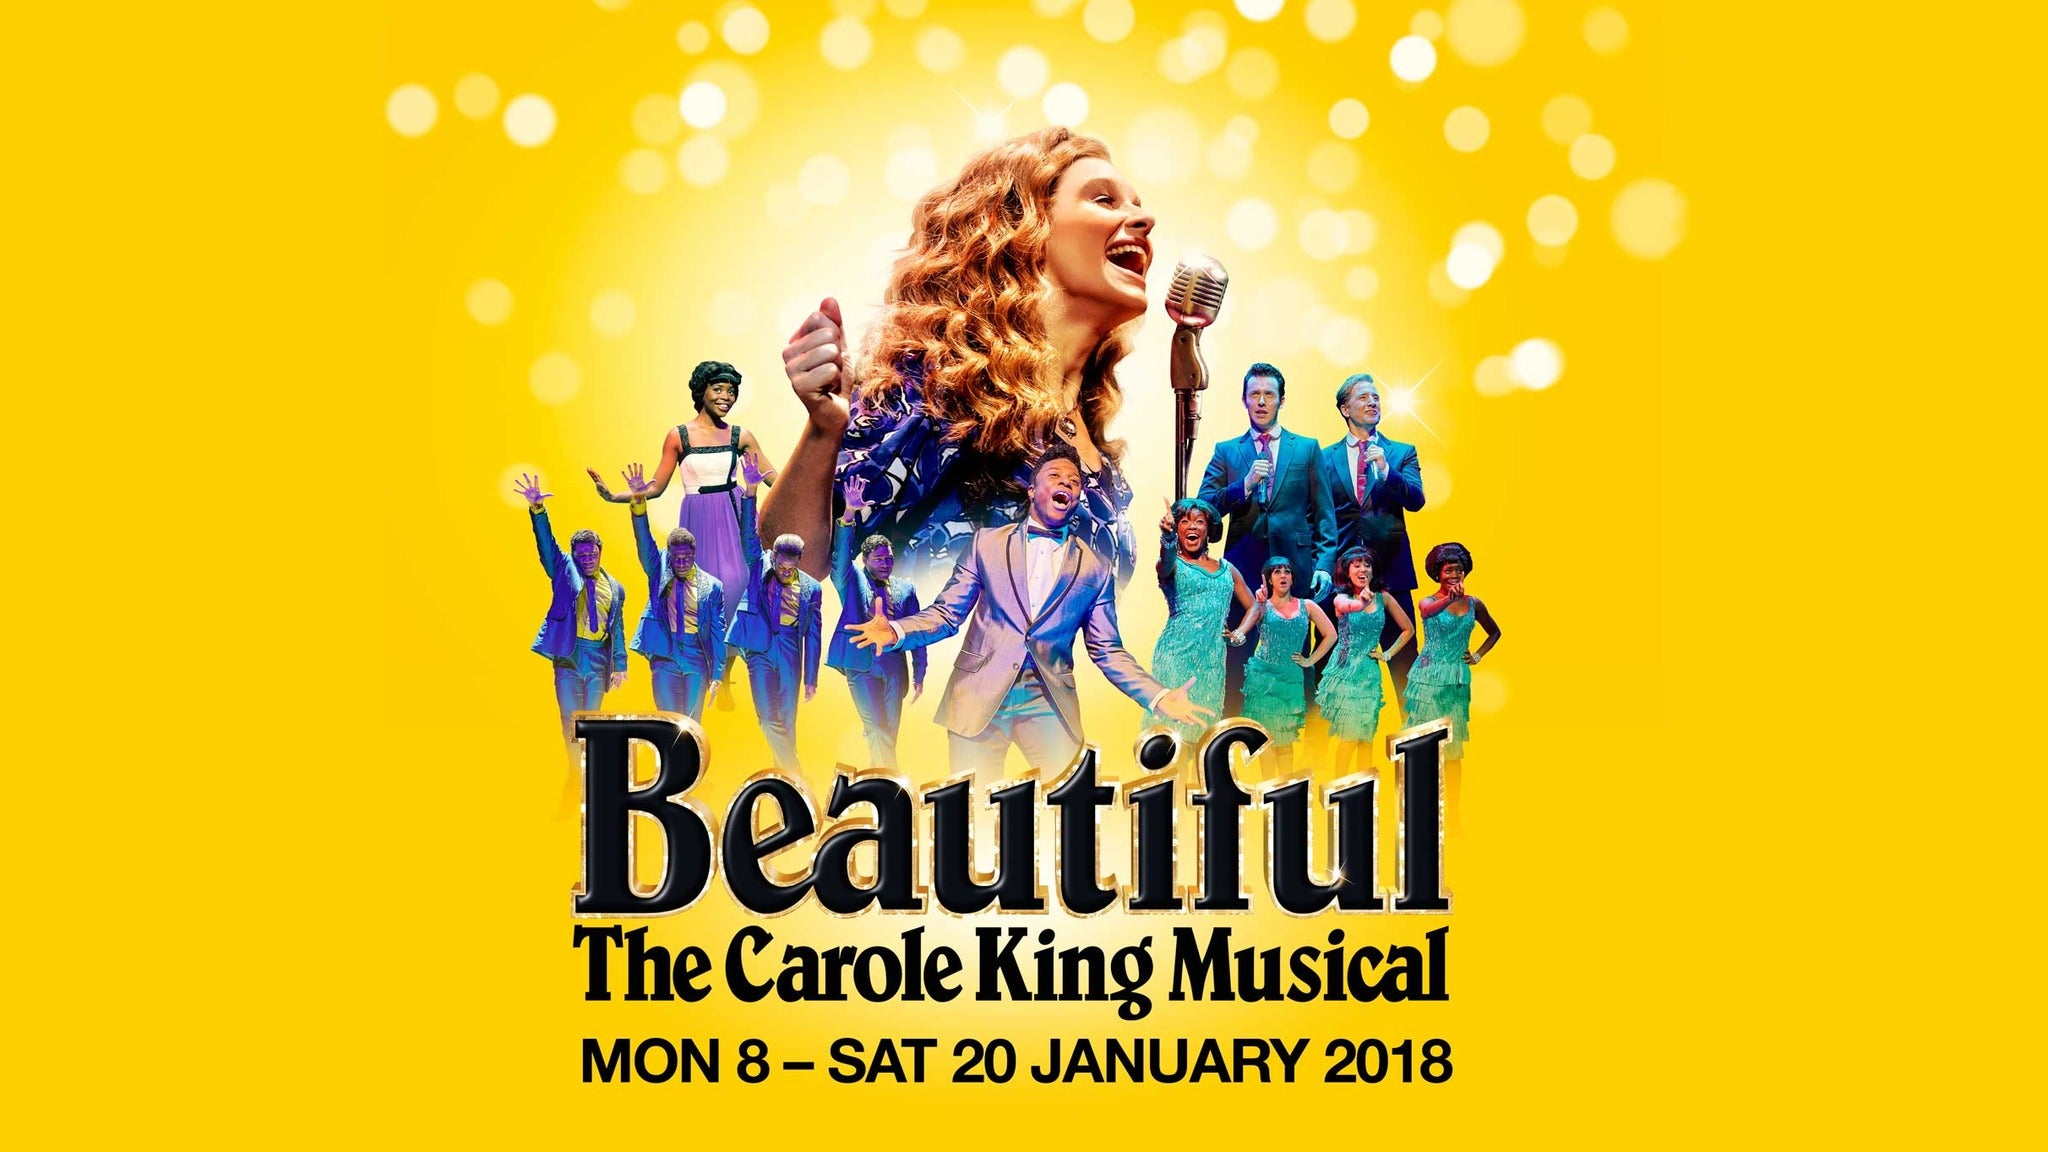 Beautiful: the Carole King Musical (Touring) - Morgantown, WV 26506